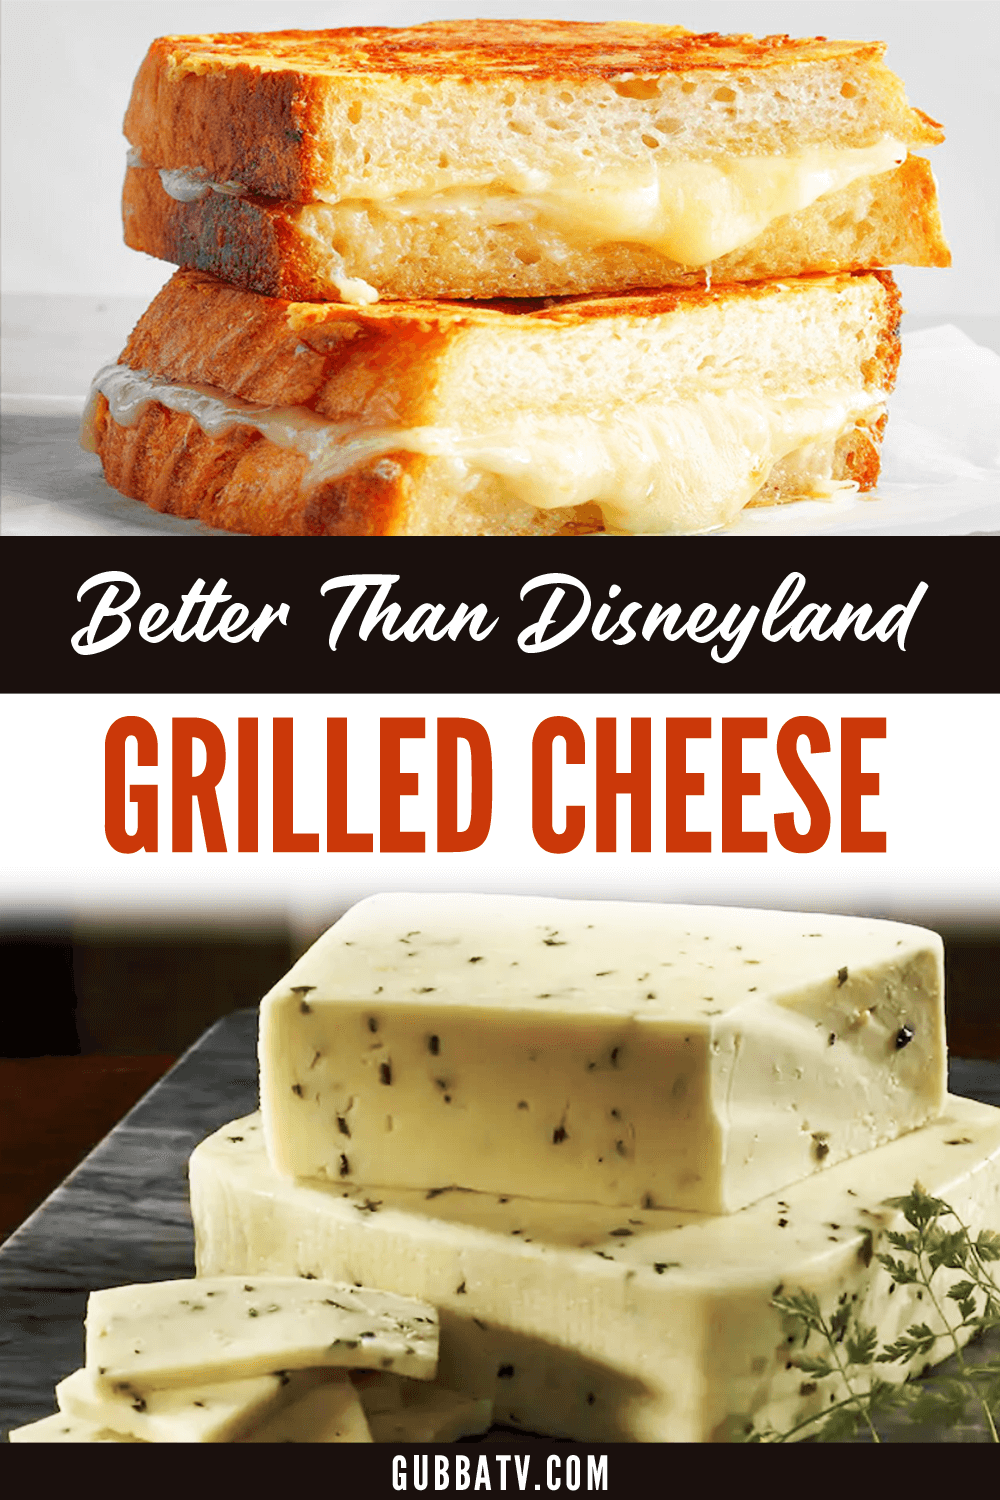 Better Than Disneyland Grilled Cheese